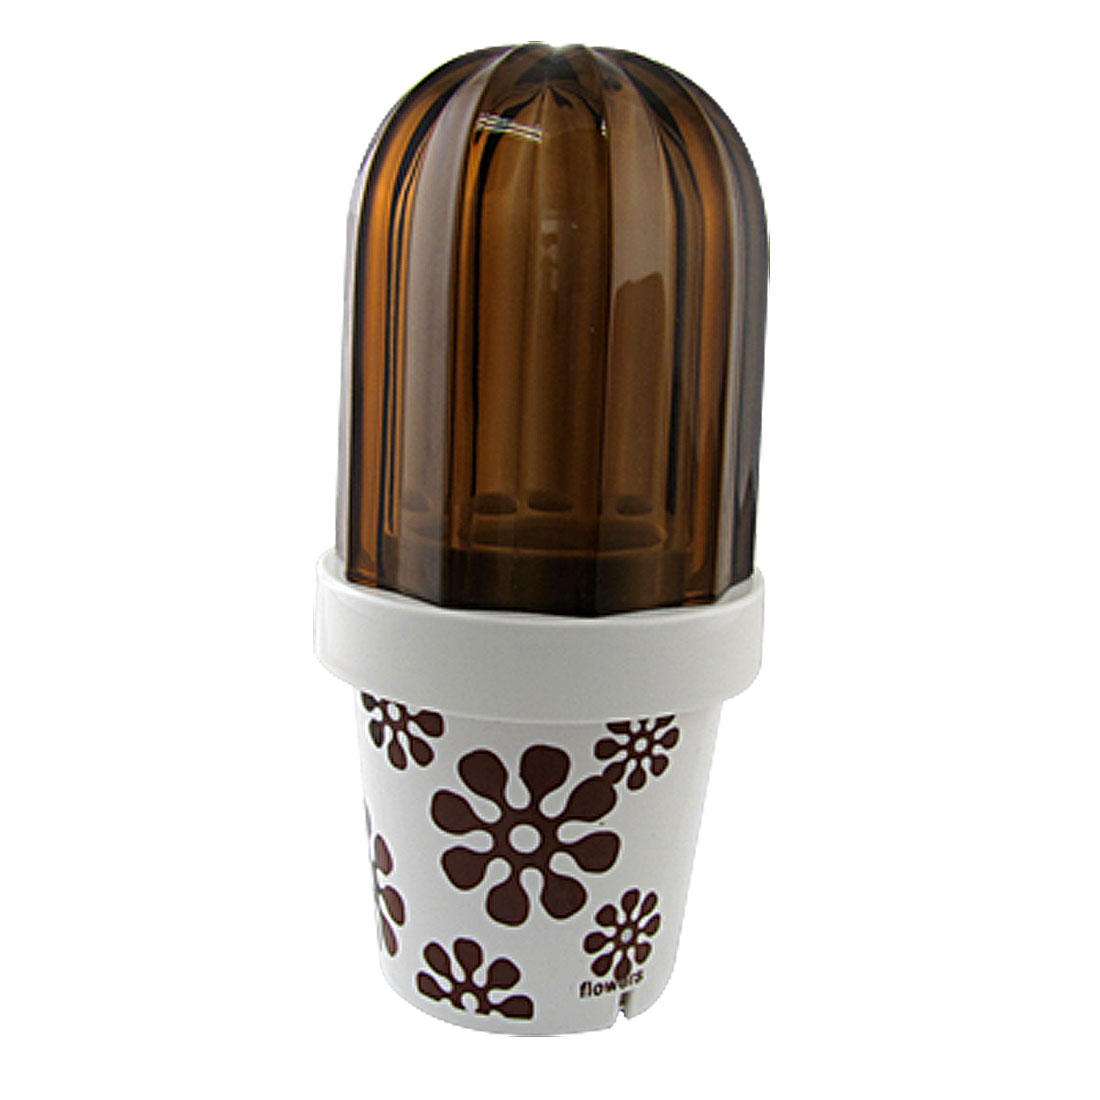 Coffee Color Floral White Toothpaste Toothbrush Holder w Cover